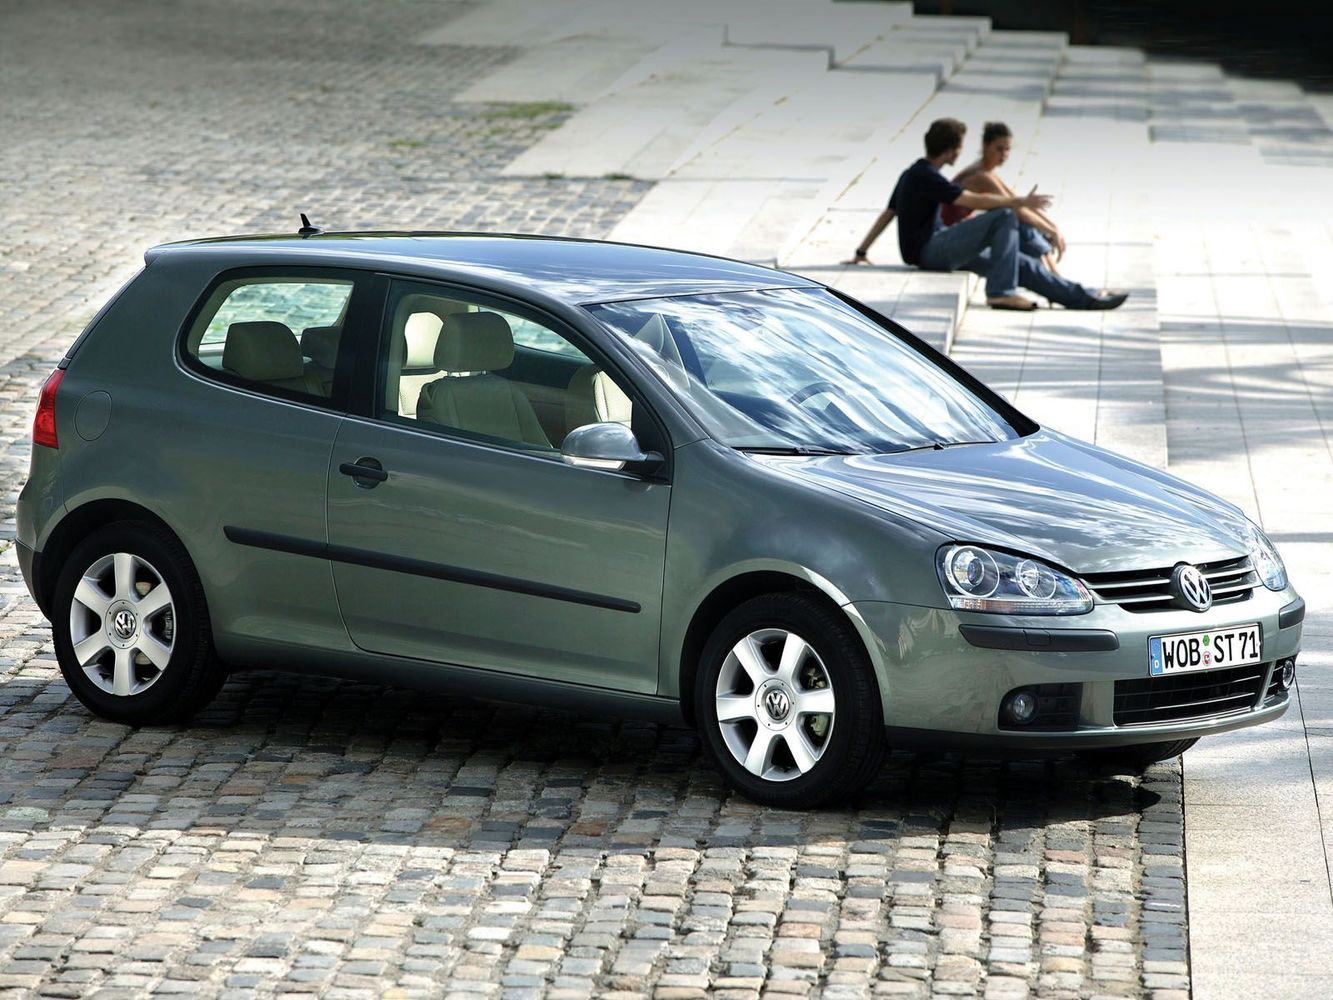 хэтчбек 3 дв. Volkswagen Golf 2003 - 2009г выпуска модификация 1.4 AMT (122 л.с.)